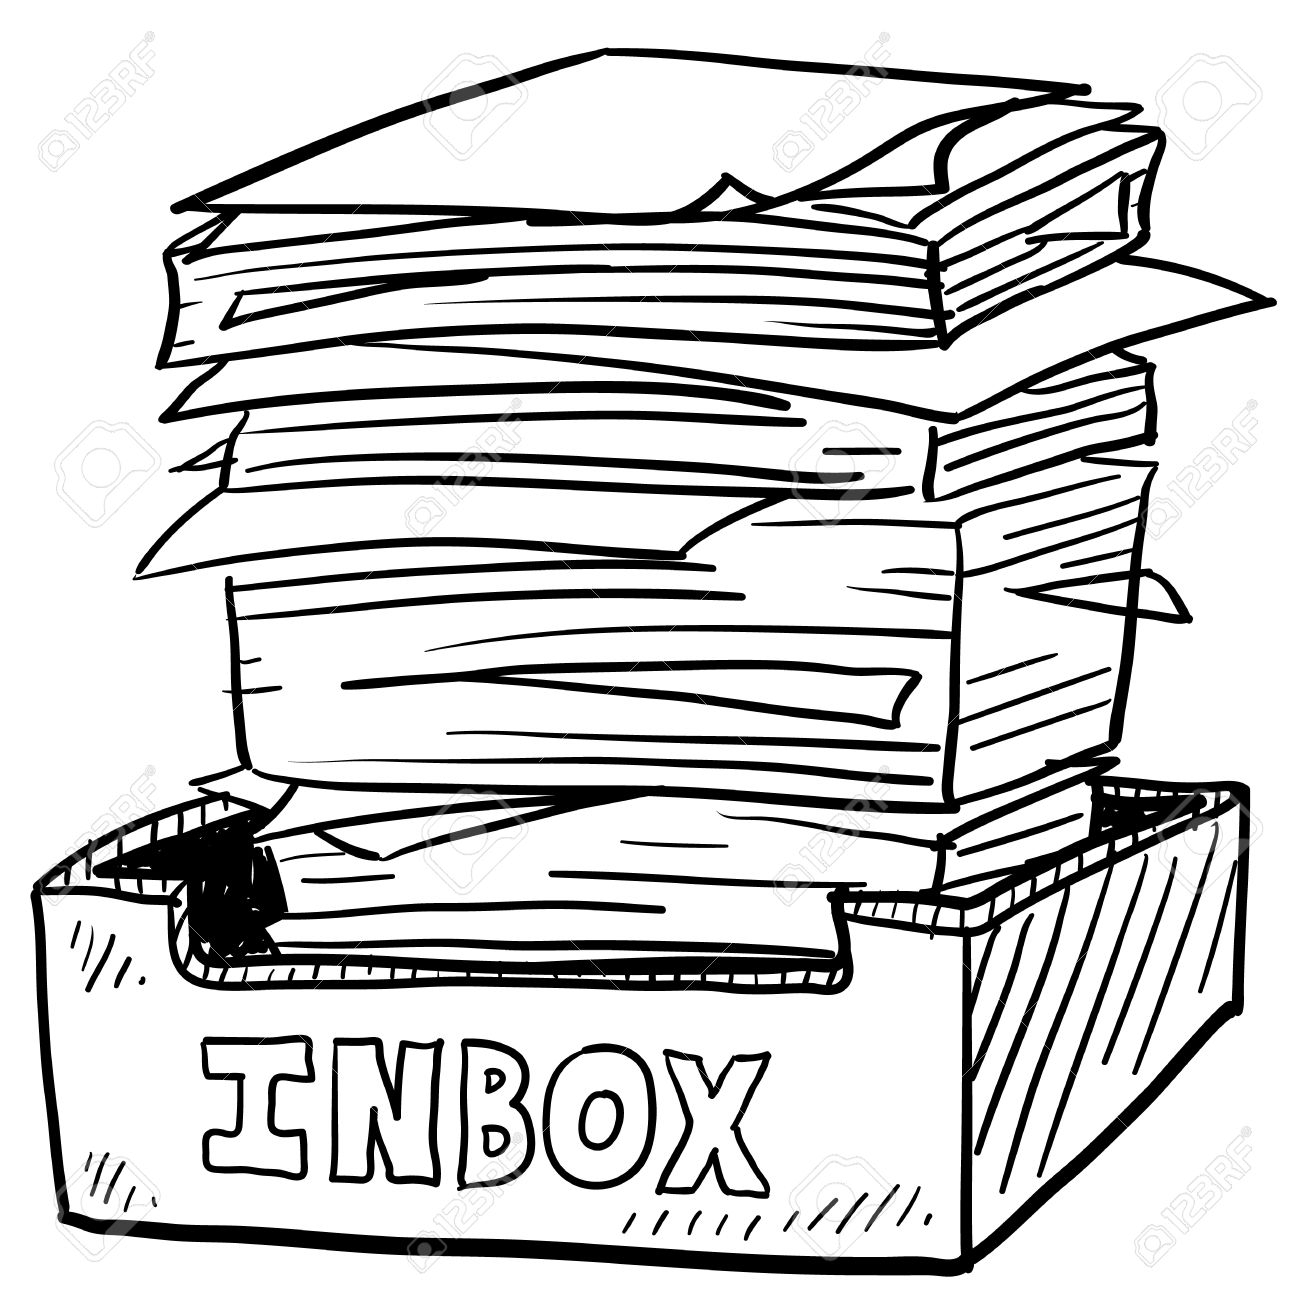 Business documents clipart.